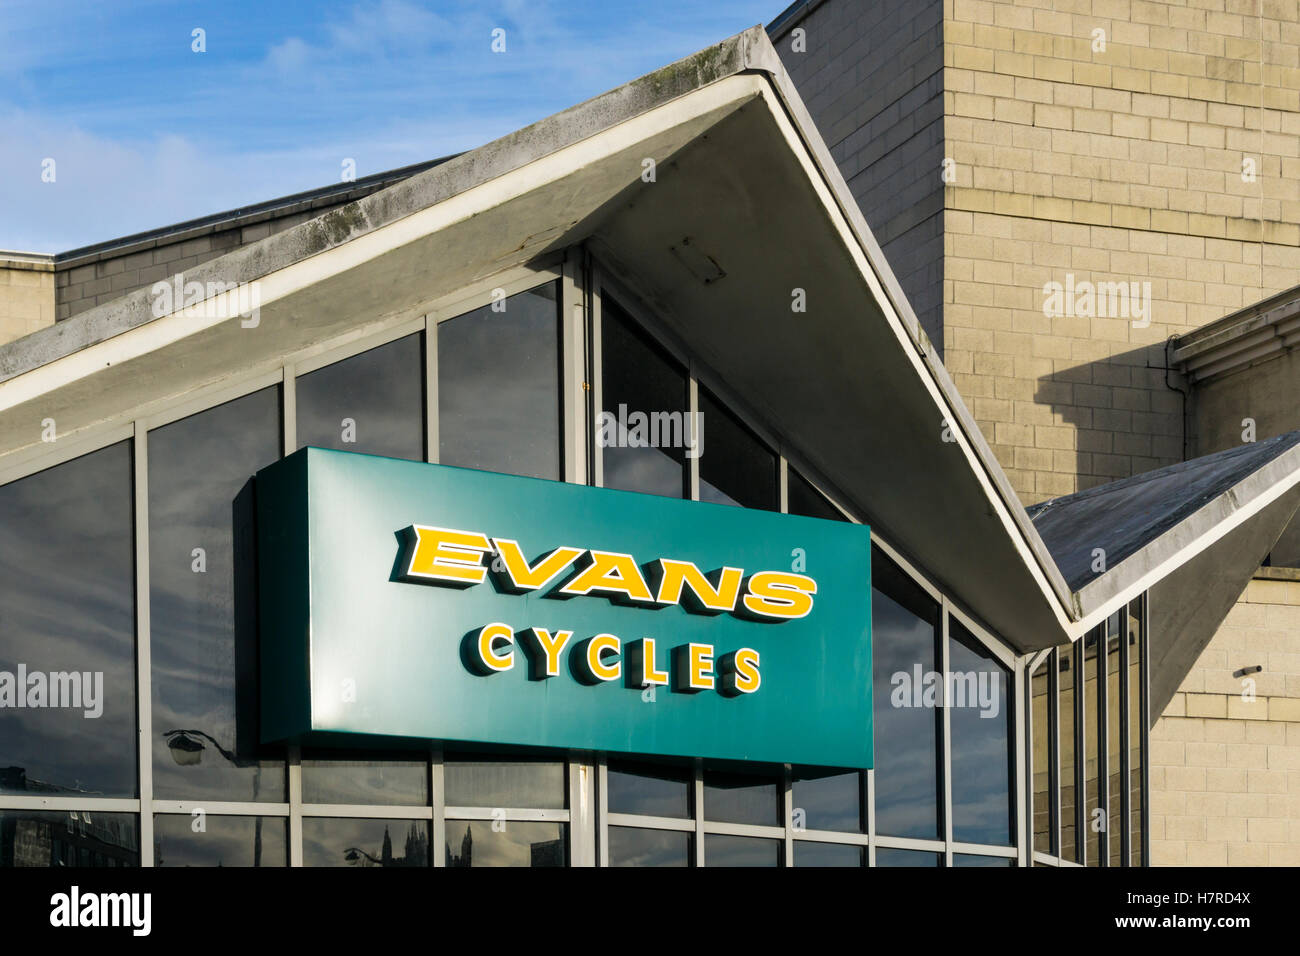 The premises of Evans Cycles in Charles Cross, Plymouth. - Stock Image